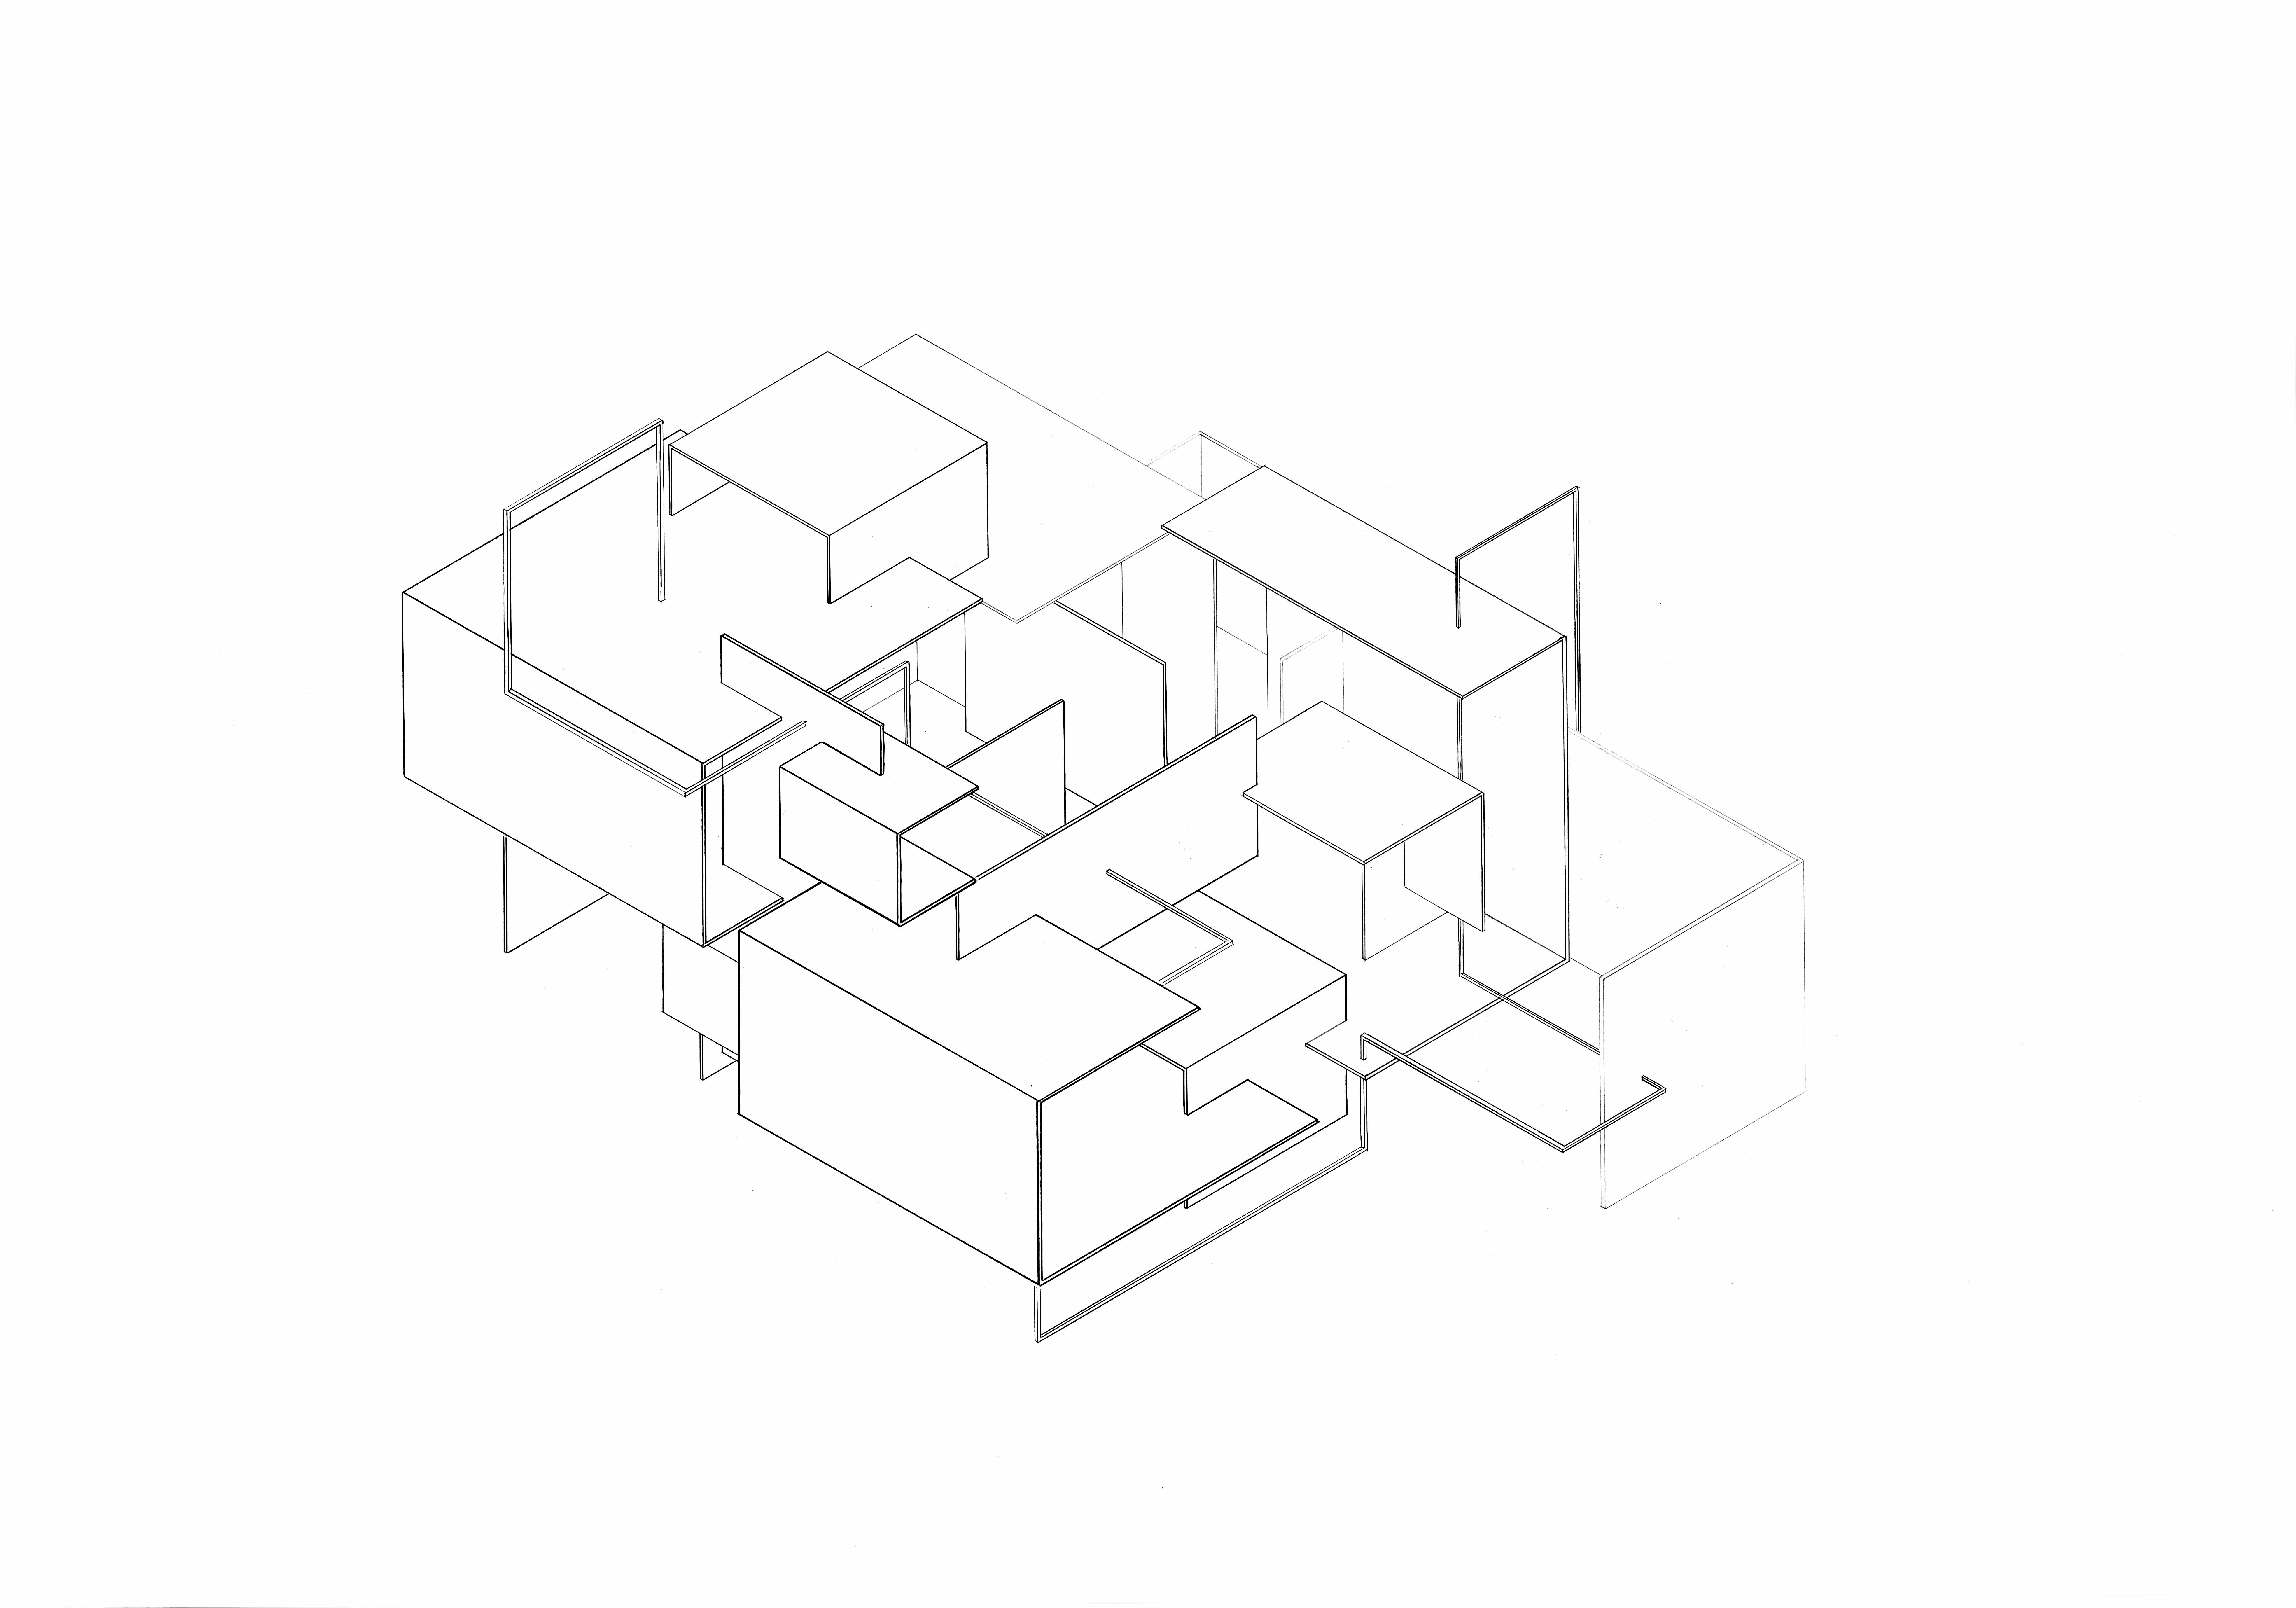 Related image people t Axonometric drawing Drawings